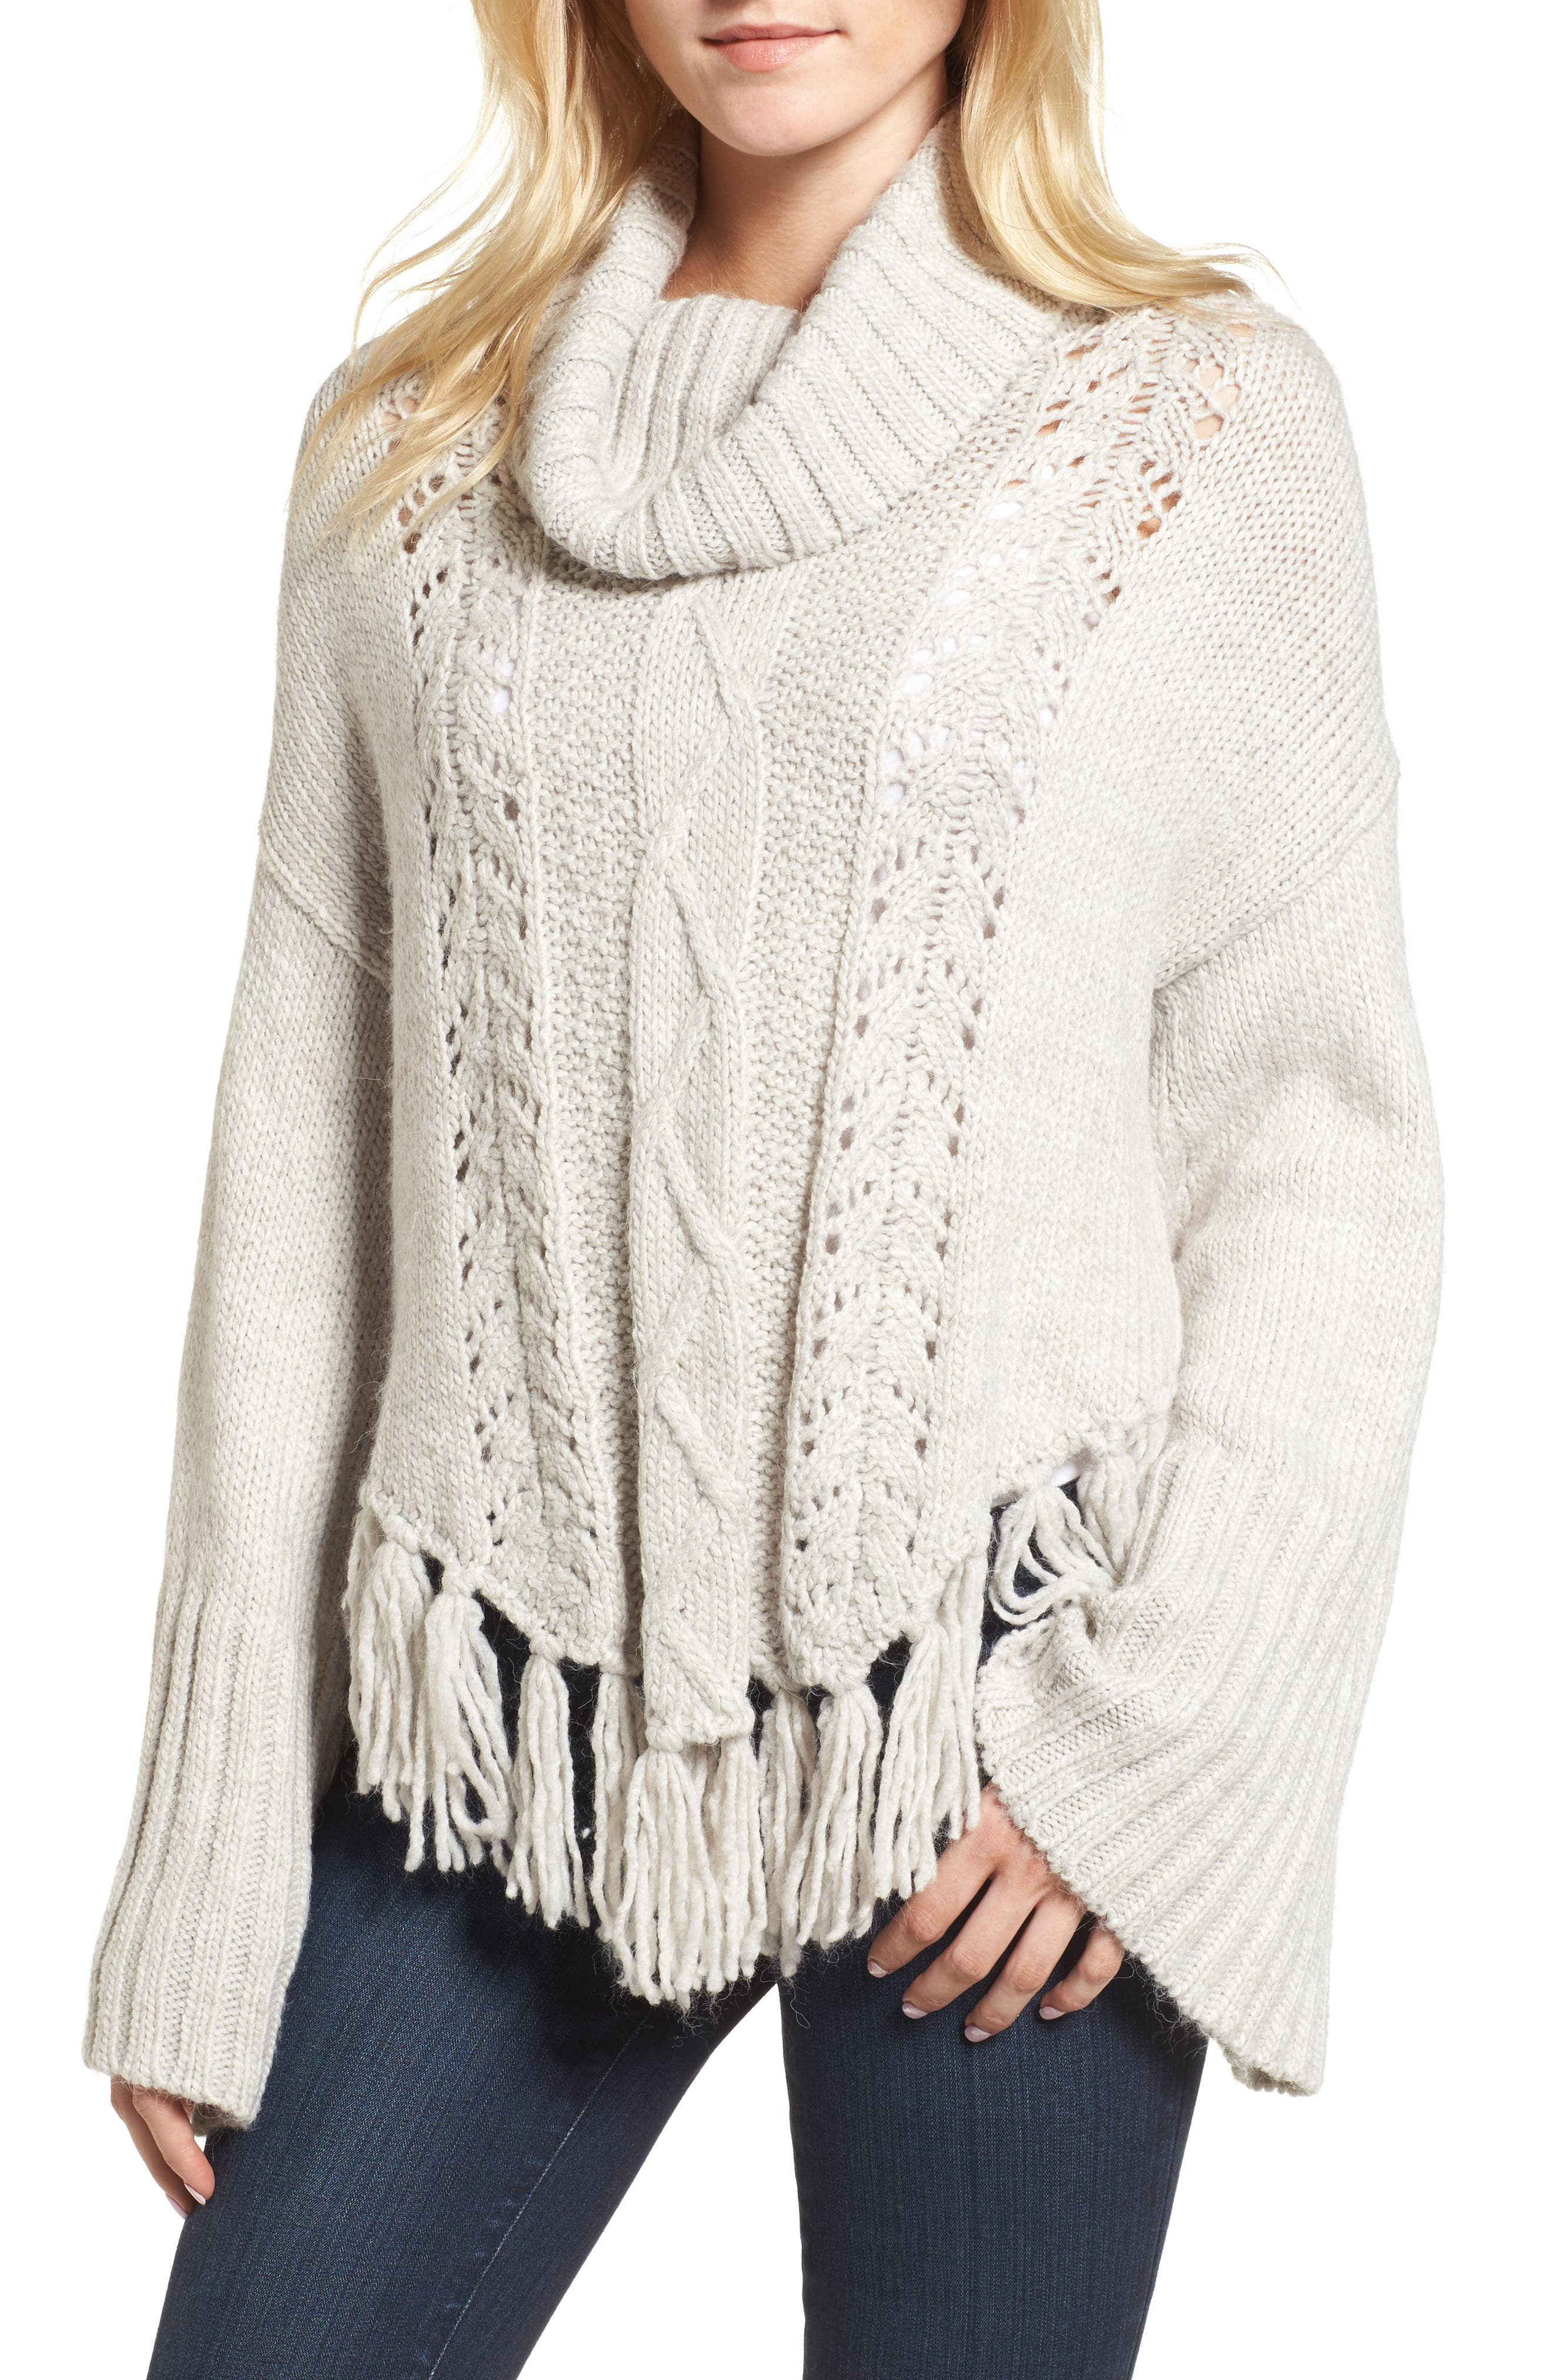 Alternate Image 1 Selected - cupcakes and cashmere Prilla Fringe Cowl Neck Sweater